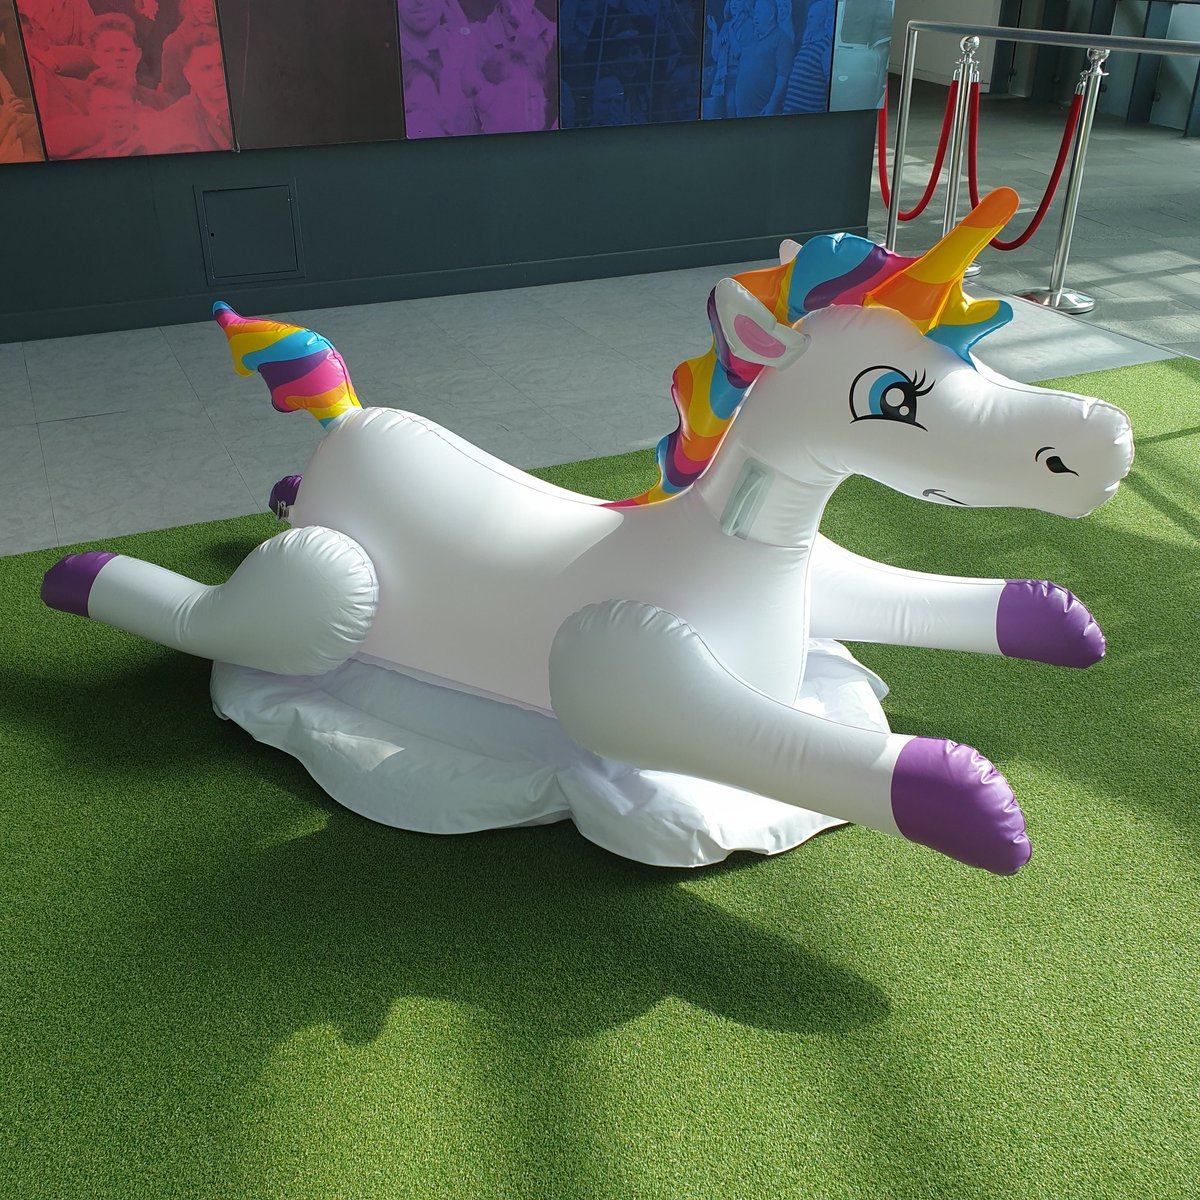 NEW SIGNING 🦄  Meet Unity the unicorn, one of the inflatables famously ridden by the @England squad during this year's @EURO2020.  Retired from active duty, Unity will be put out to pasture on our galleries. https://t.co/eQ4DXs1QpK https://t.co/xgpuKwQUN9